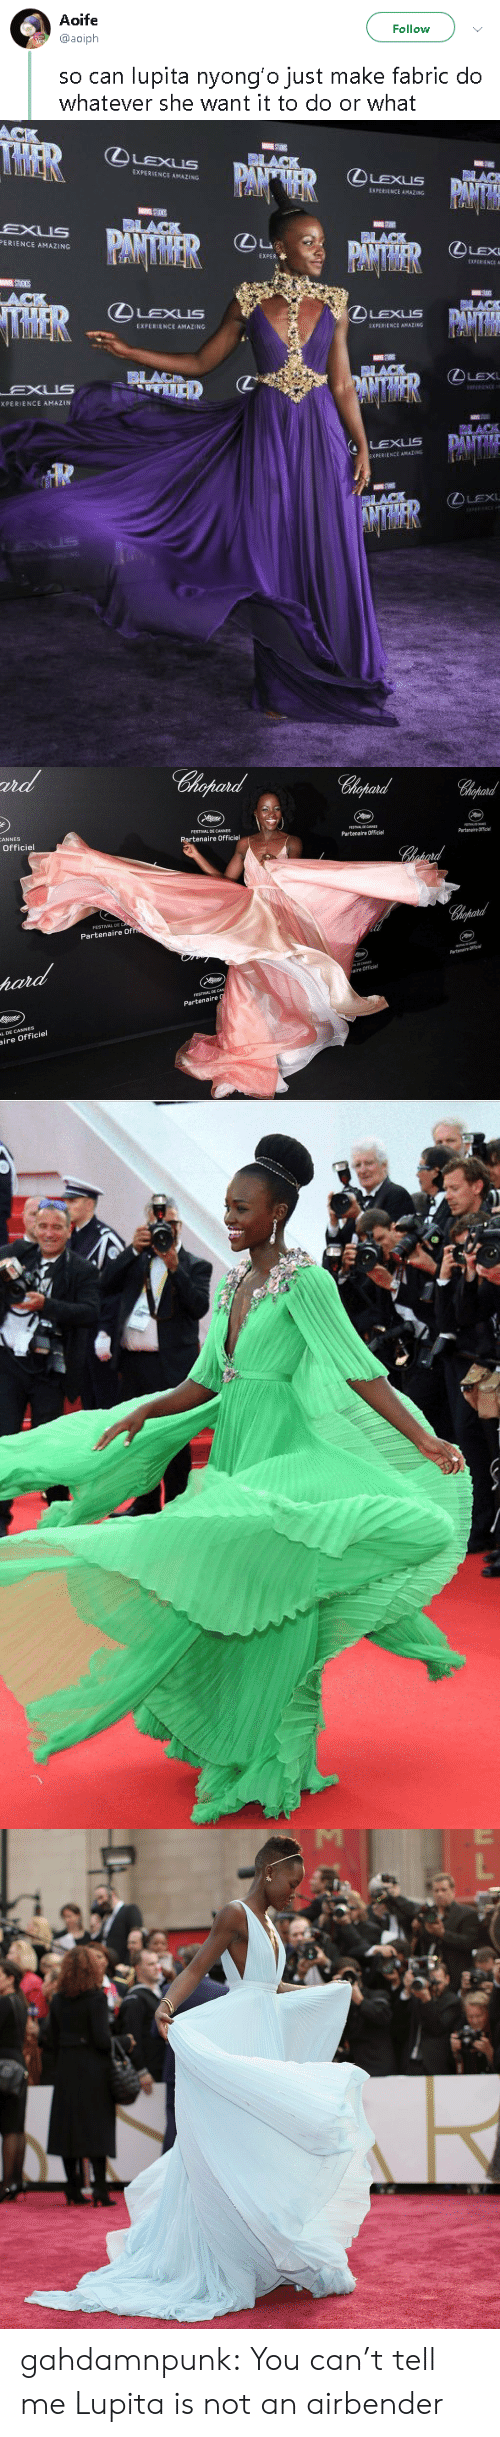 Lexus, Tumblr, and Amazin: Aoife  @aoiph  Follow  so can lupita nyong'o just make fabric do  whatever she want it to do or what   IXPERIENCE AMAZING  PERIENCE AMAZING  LEX  E XPE  BLAC  ④LExus  LEXUS  鉌HRIENCE AMAZING  LEX  EXUS  XPERIENCE AMAZIN  DLACK  LEXUS   ut  ANNES  Officiel  FESTIVAL DE CANNES  Partenaire Officiel  FESTIVAL DE CANNES  Partenaire Officiel  ESTINAL DE CANNES  Partenaire Officiel  FESTIVAL  DE  Partenaire Of  Partenaire Officie  A DE CANNES  aire Officiel  FESTIVAL DE CAN  Partenaire  L DE CANNES  ire Officiel gahdamnpunk: You can't tell me Lupita is not an airbender